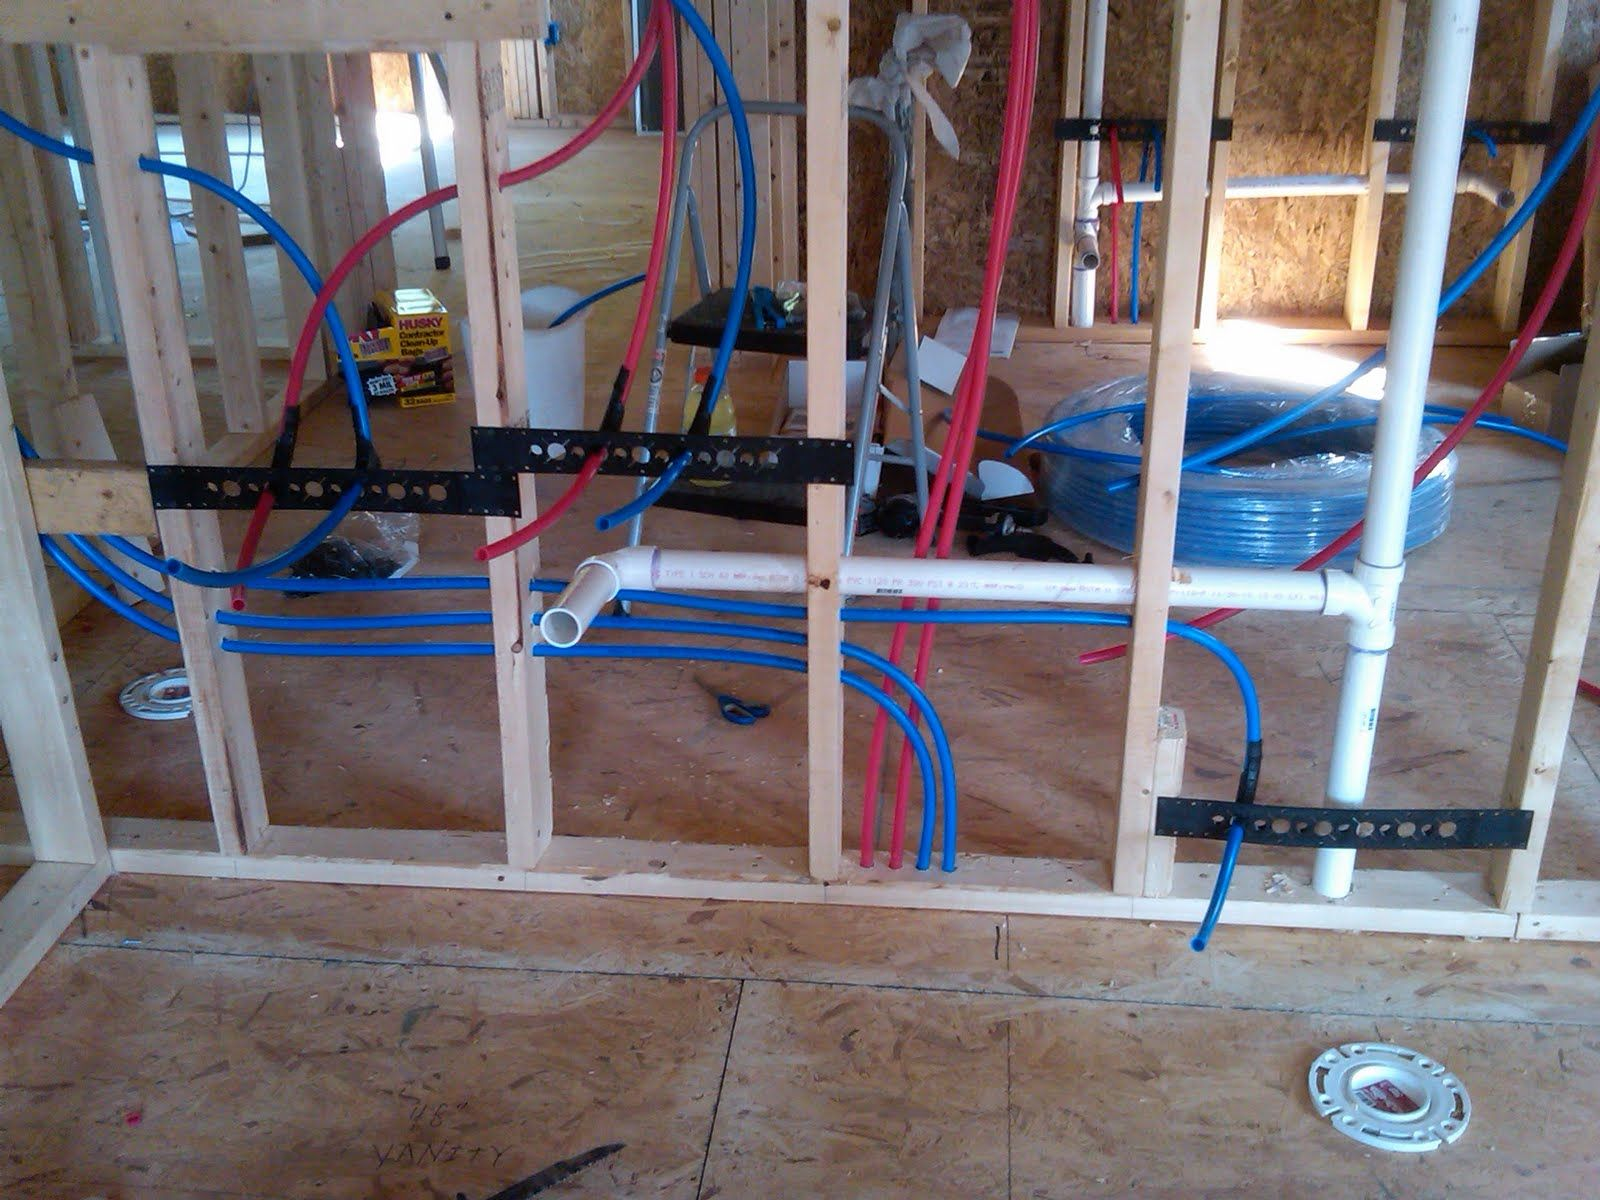 hight resolution of plumbing pex water lines install for toilet sinks drain pipe photo